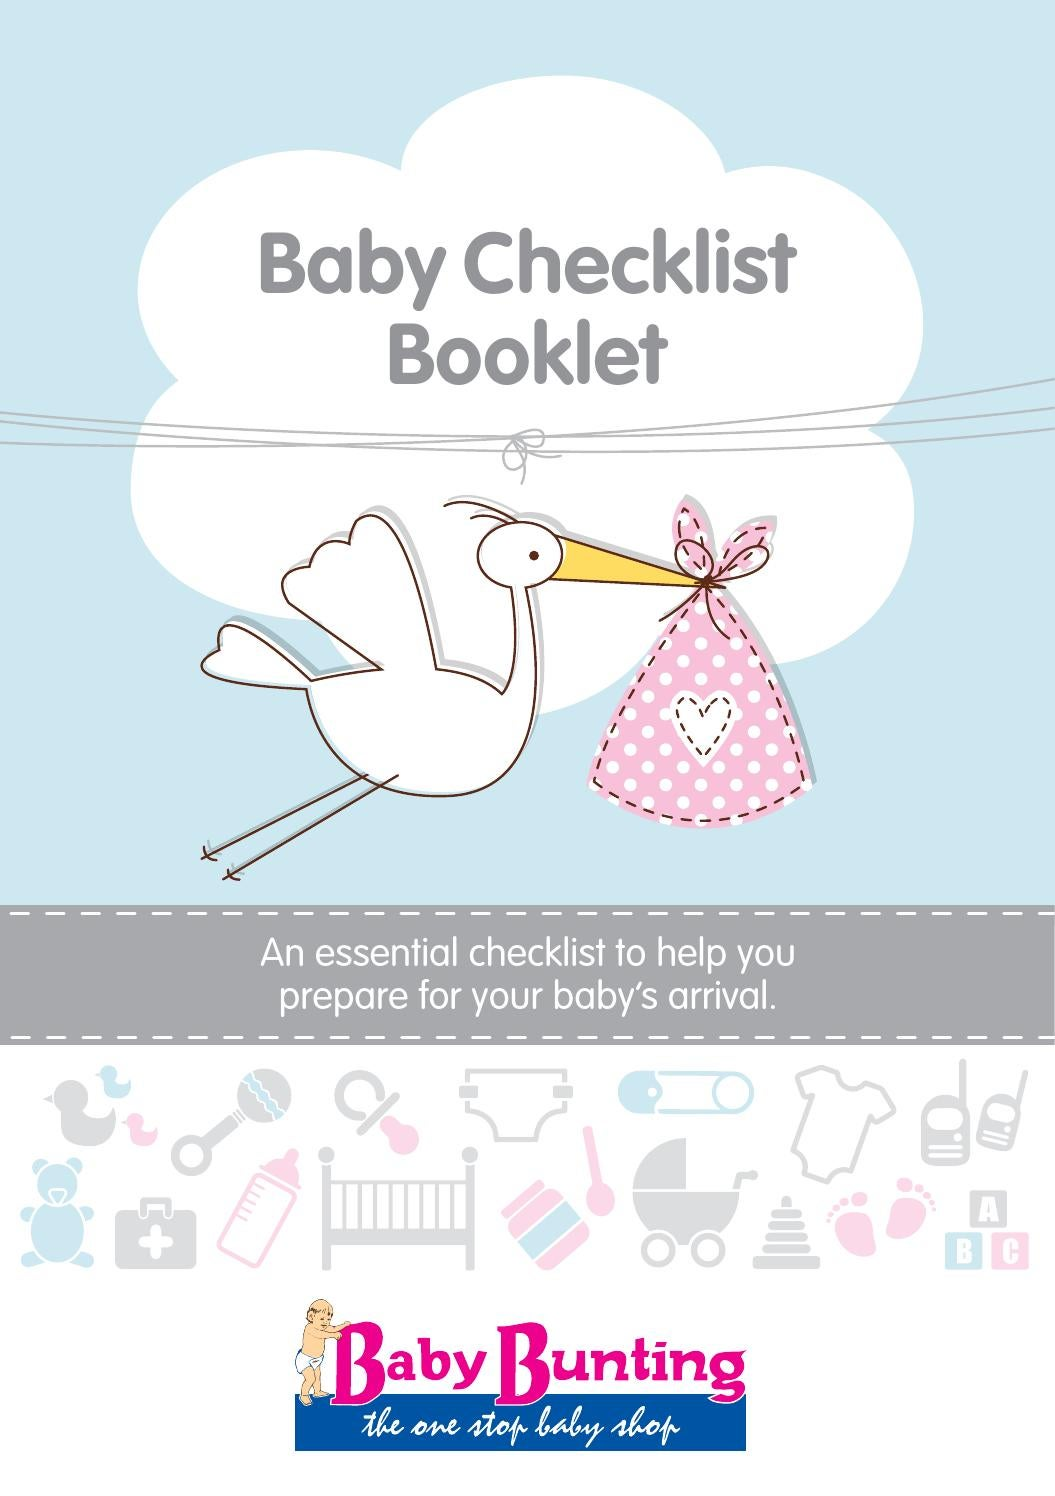 Baby Shops Helensvale Baby Checklist Booklet Baby Bunting 2015 By Grand Publishing Issuu